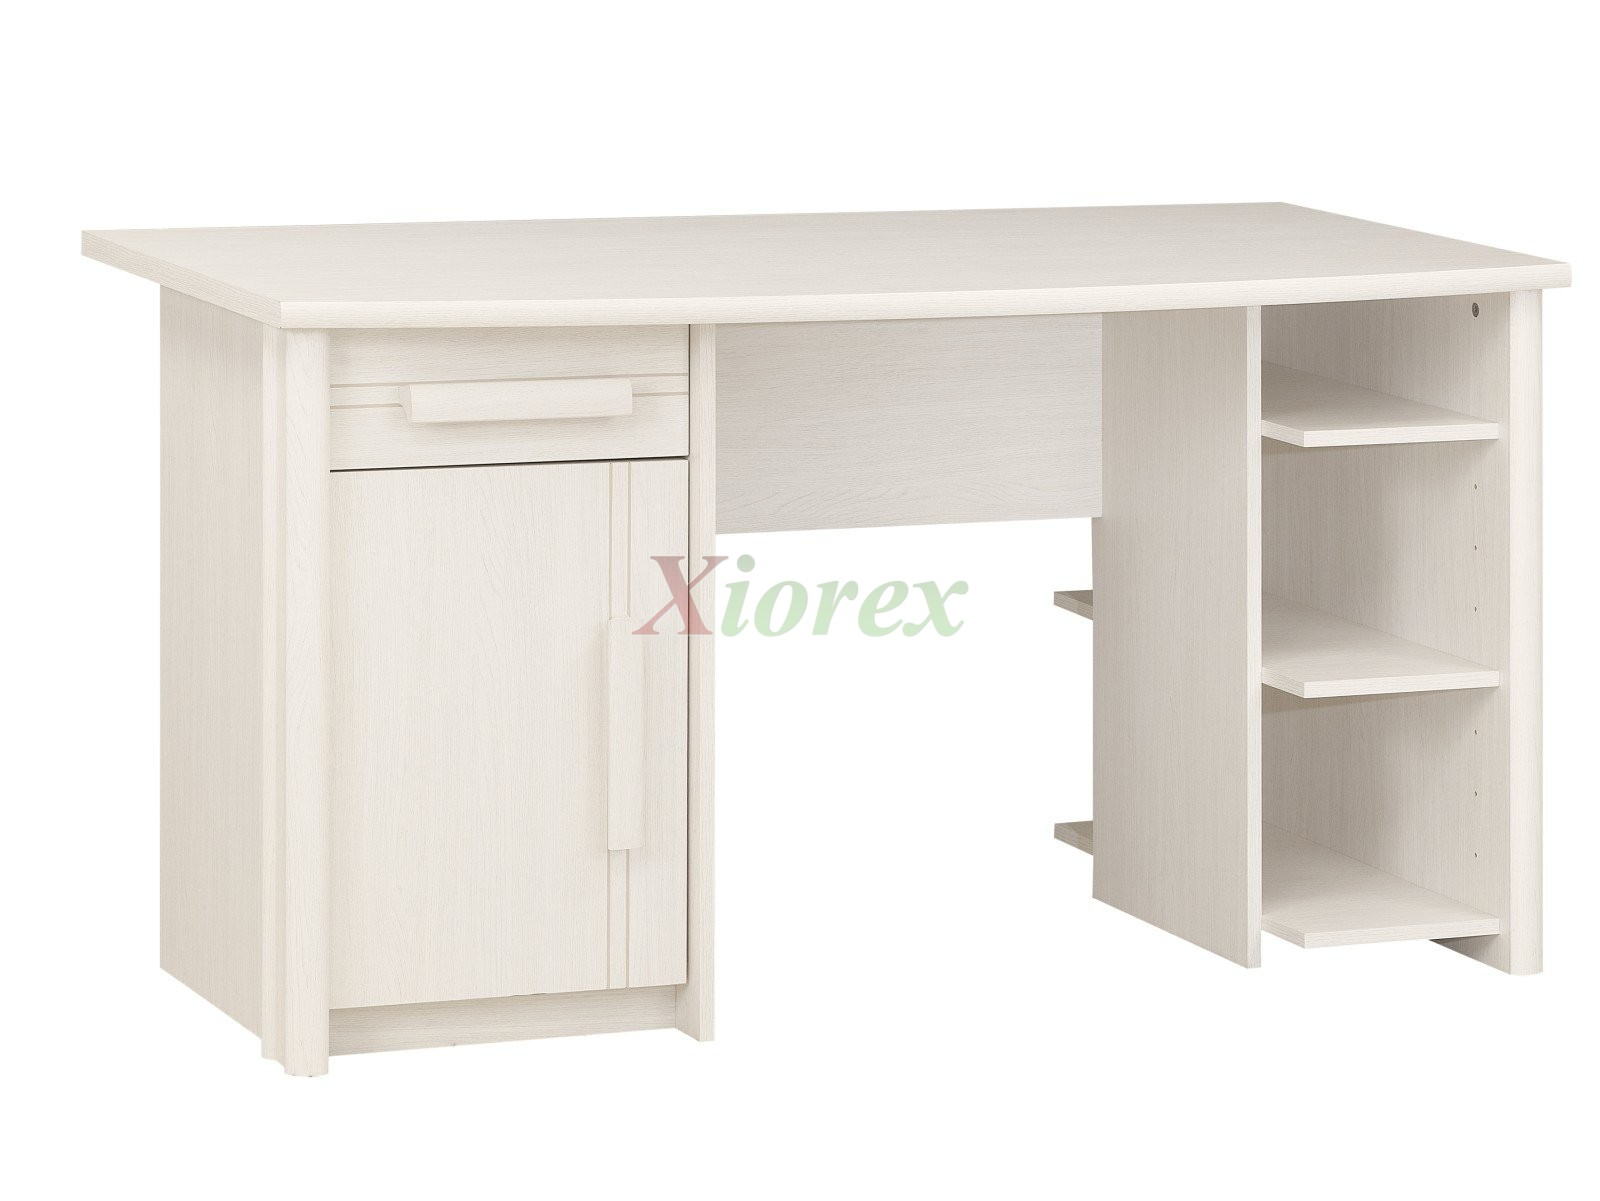 Student Desk Gami Montana In White Effect Ash Xiorex